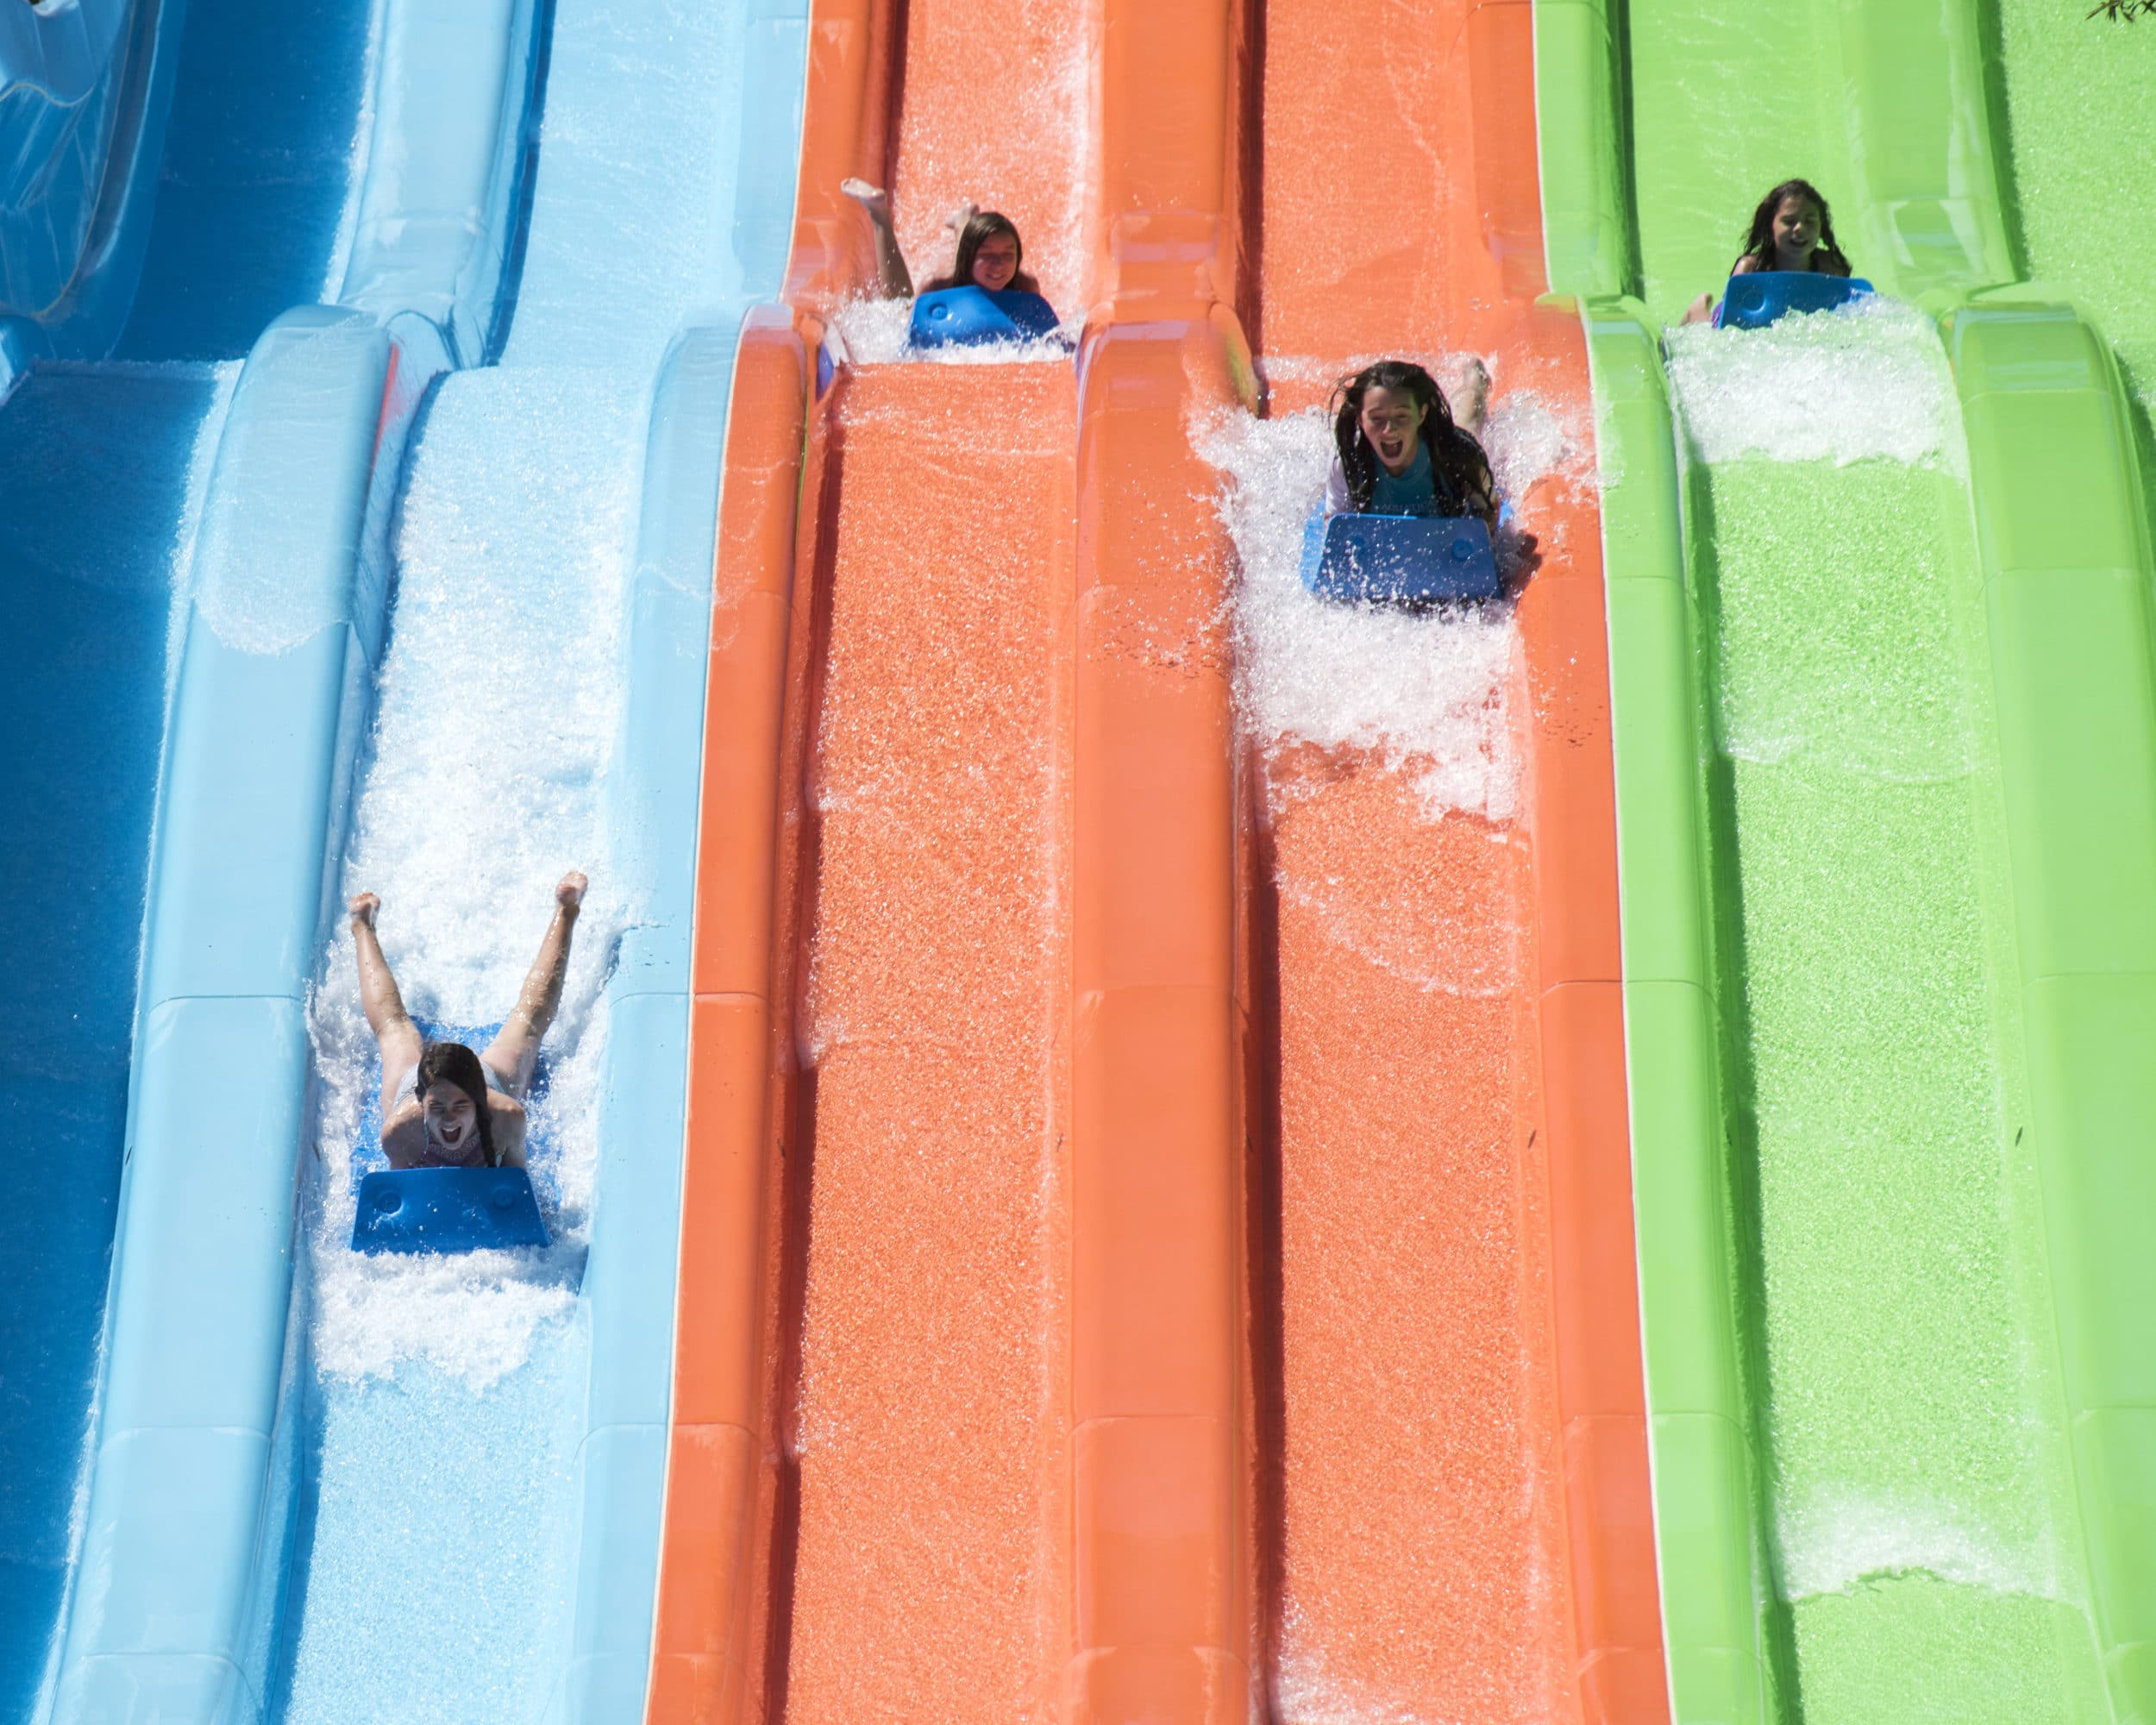 Aquatica San Diego is a theme park full of water rides and relaxed fun in the sun.